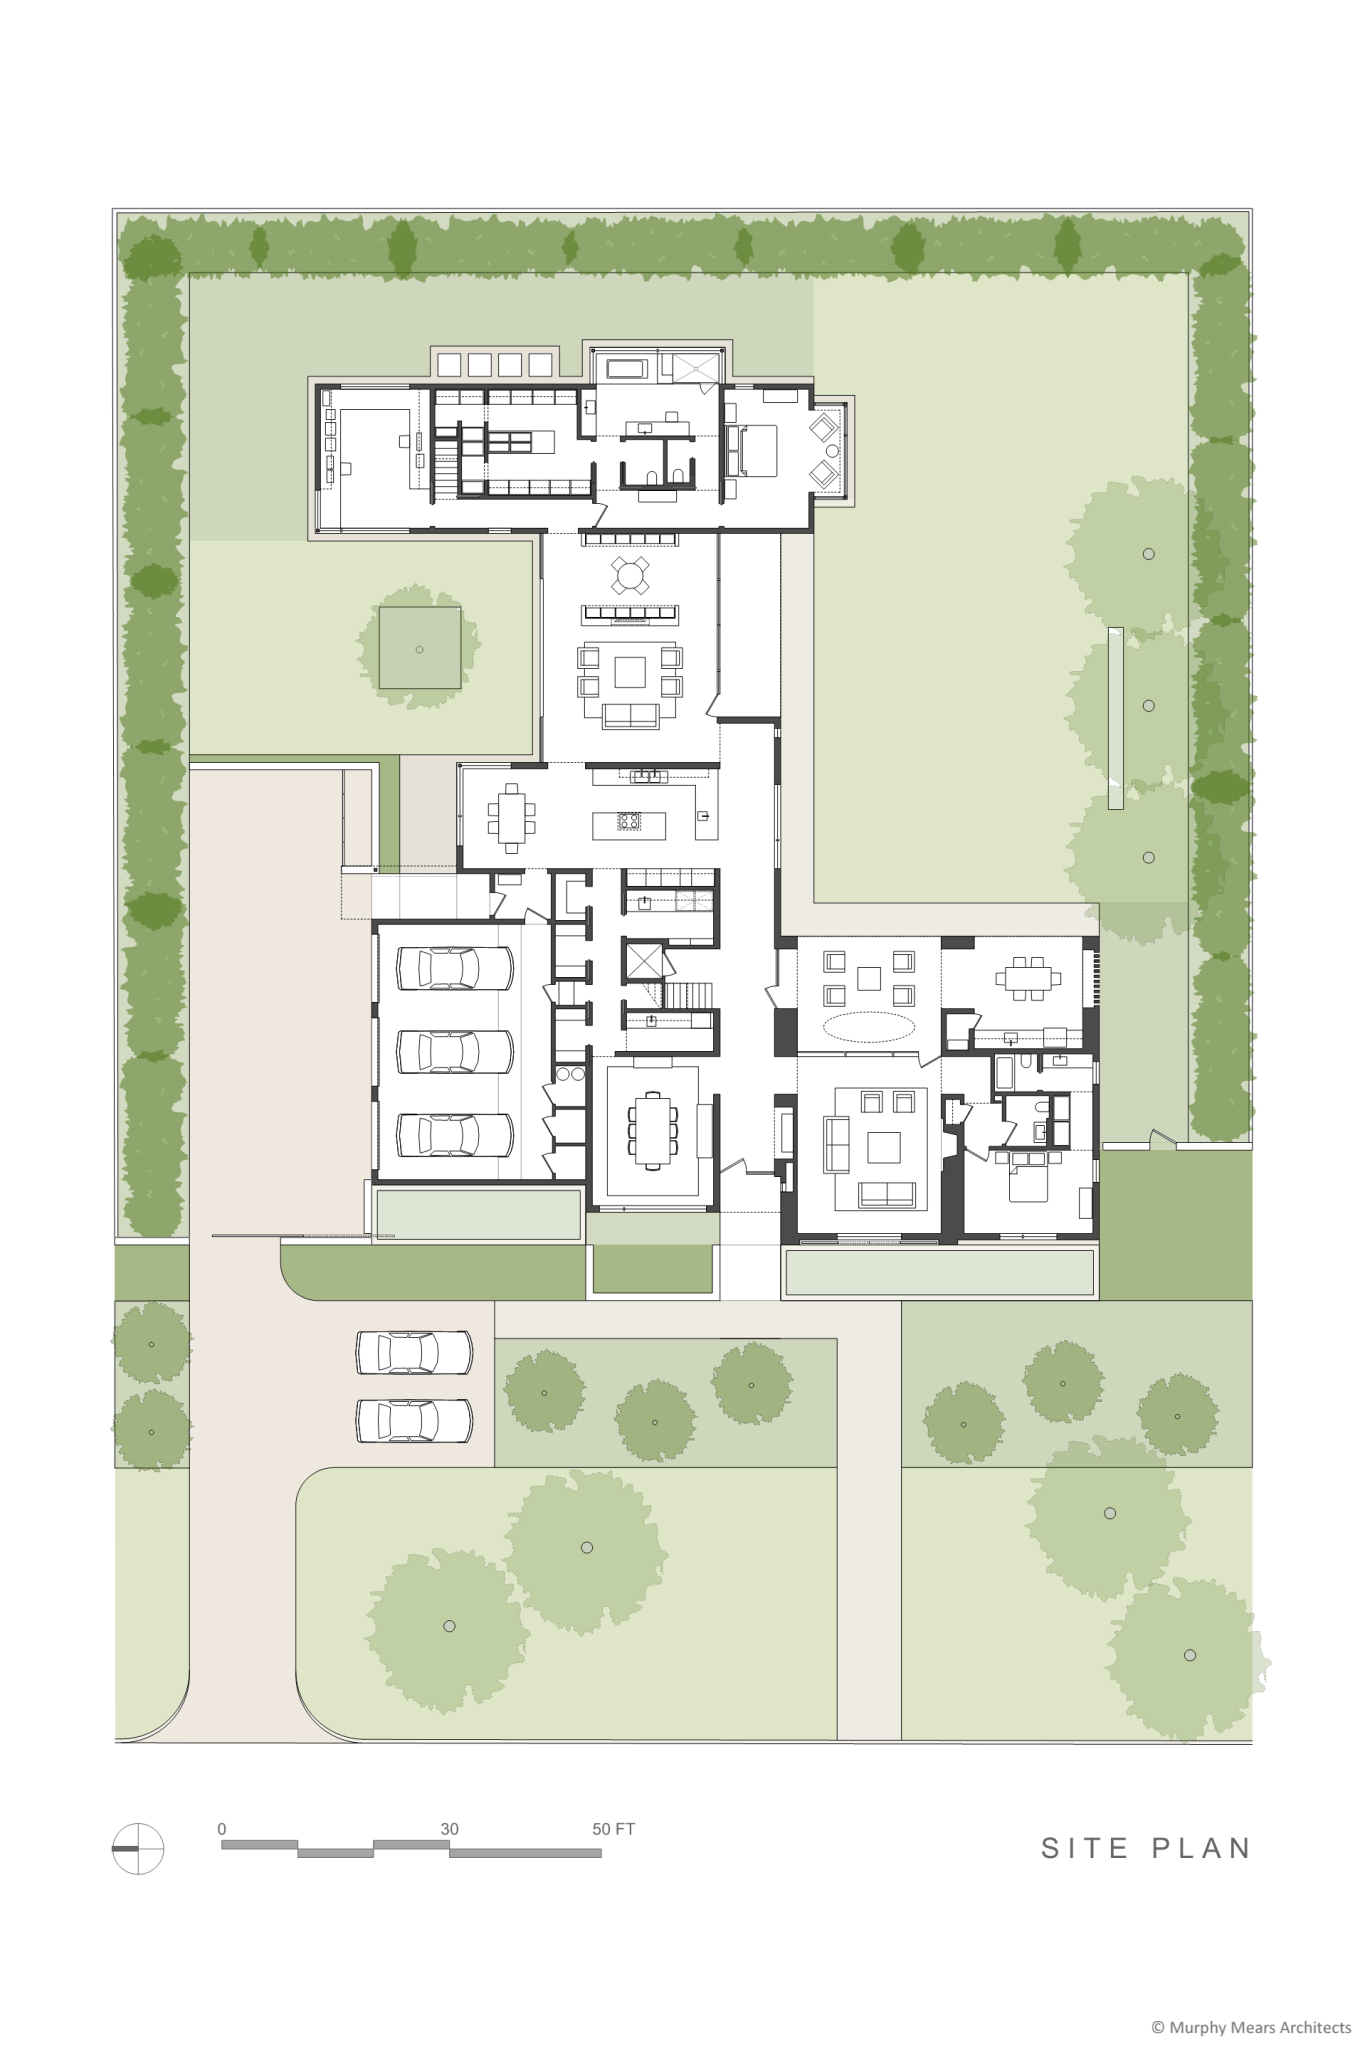 Gallery house murphy mears architects for Modern site plan